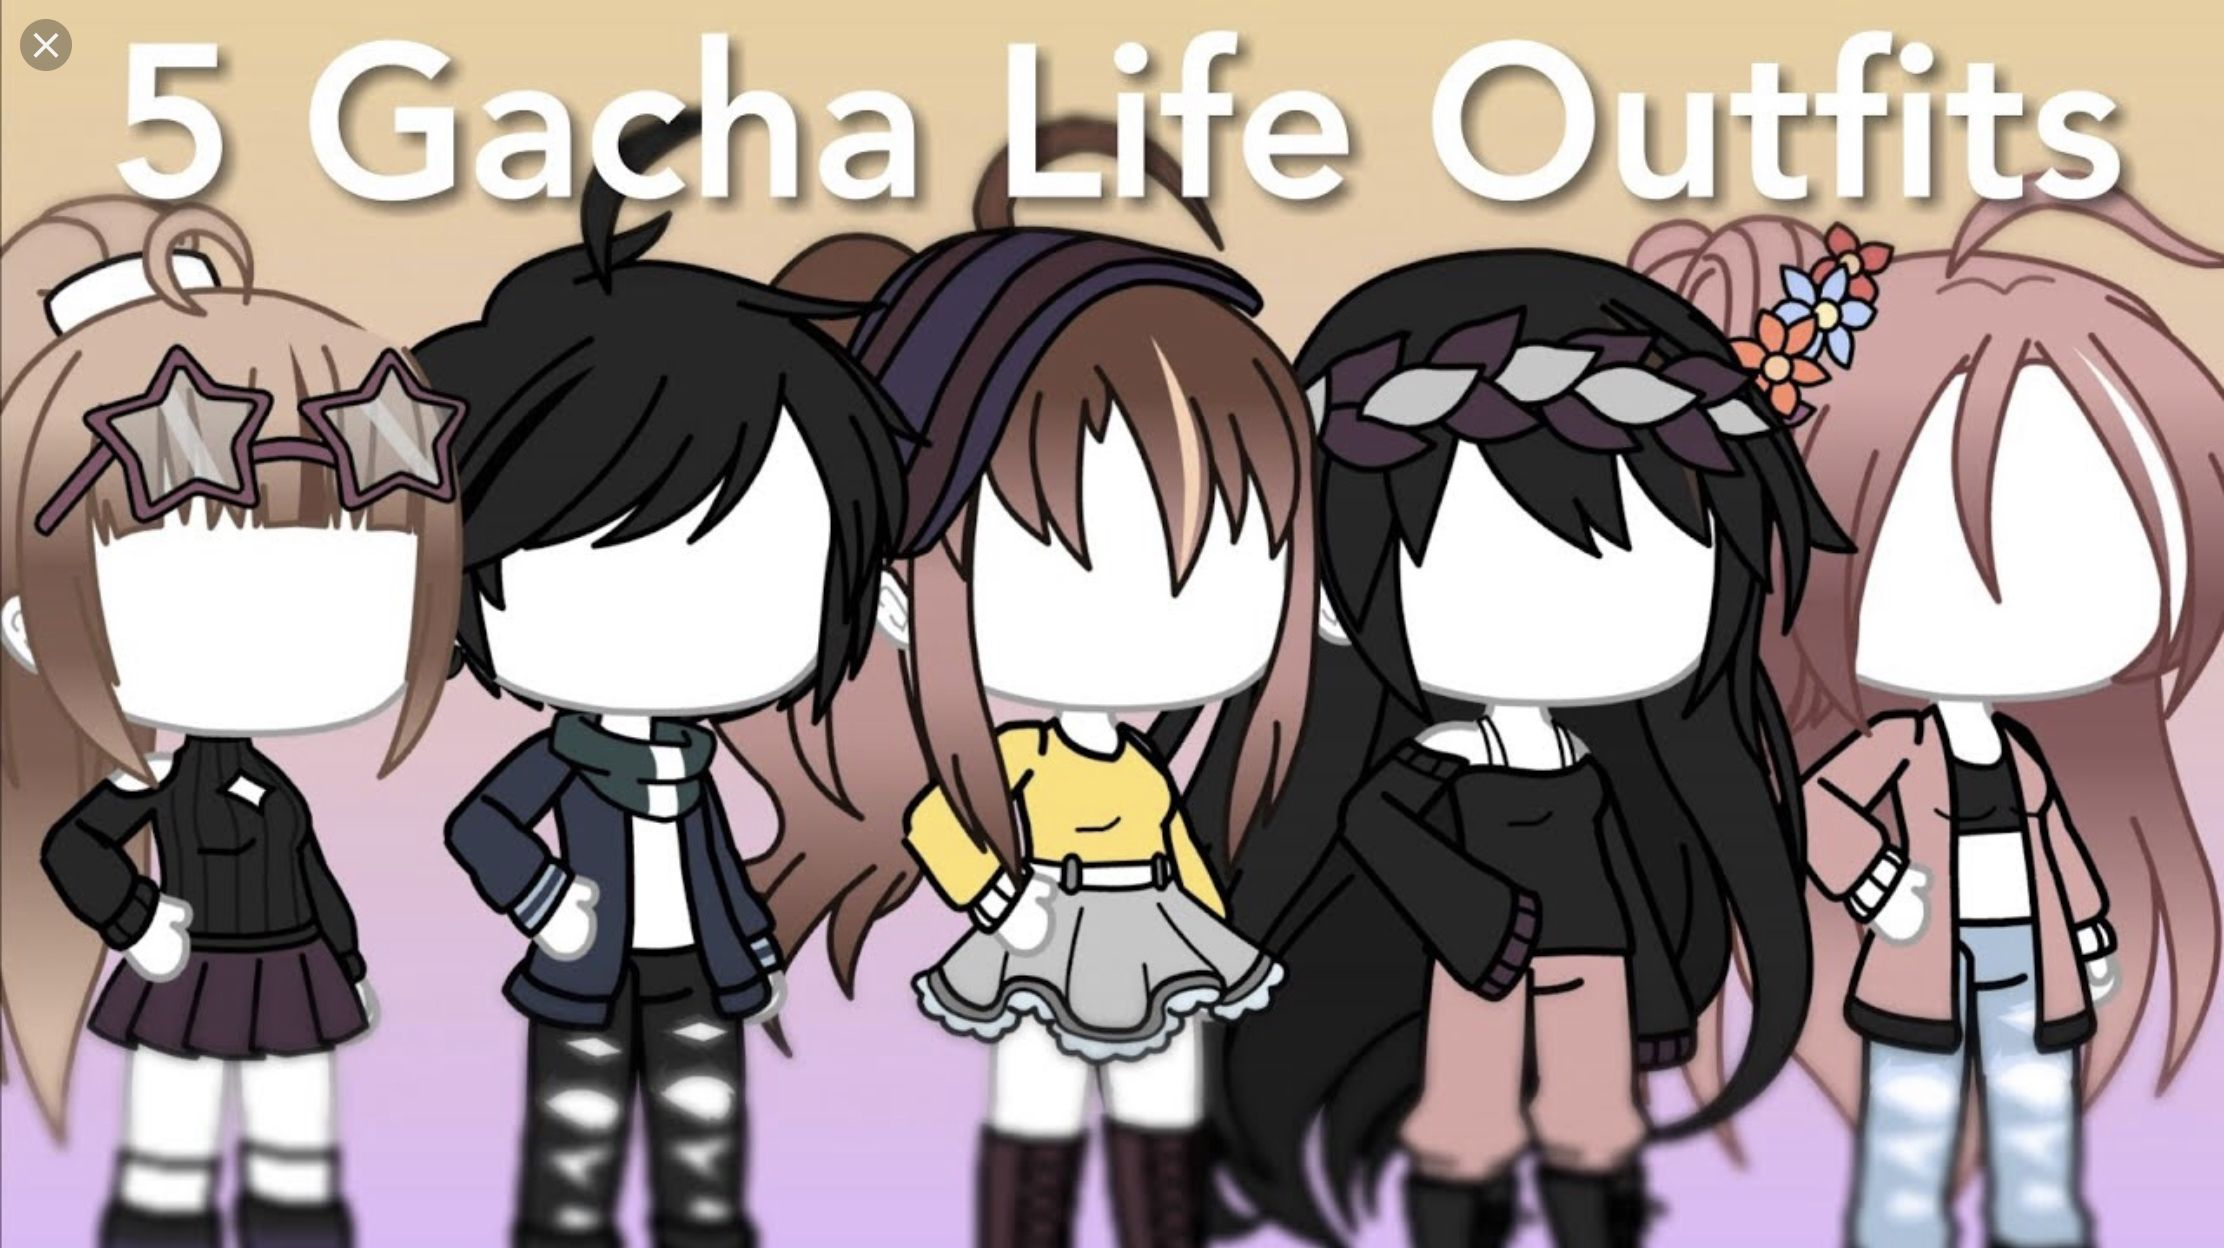 Pin By Kᑌᑎᒍᗩᒪ Gᗩᗯᒪi On Gacha Life Outfits With Images